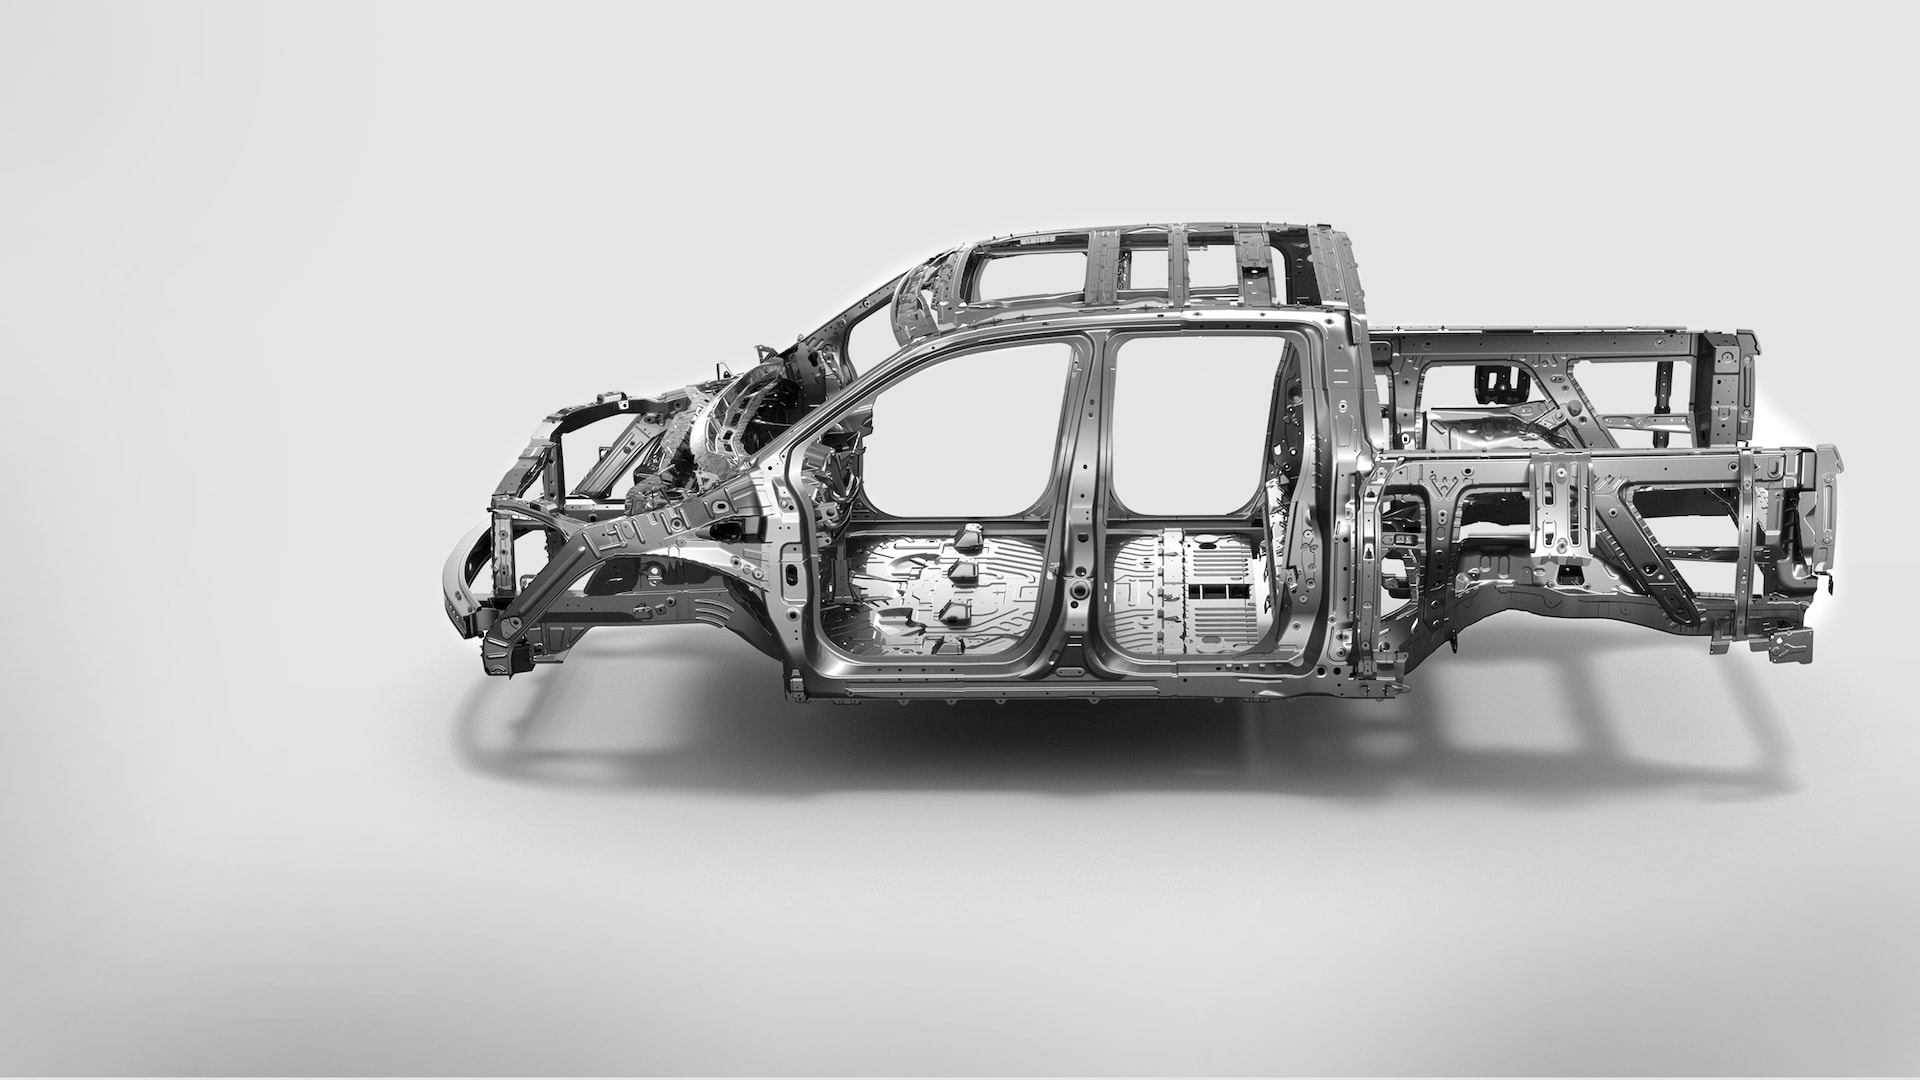 Unit-body chassis construction detail in the 2020 Honda Ridgeline.